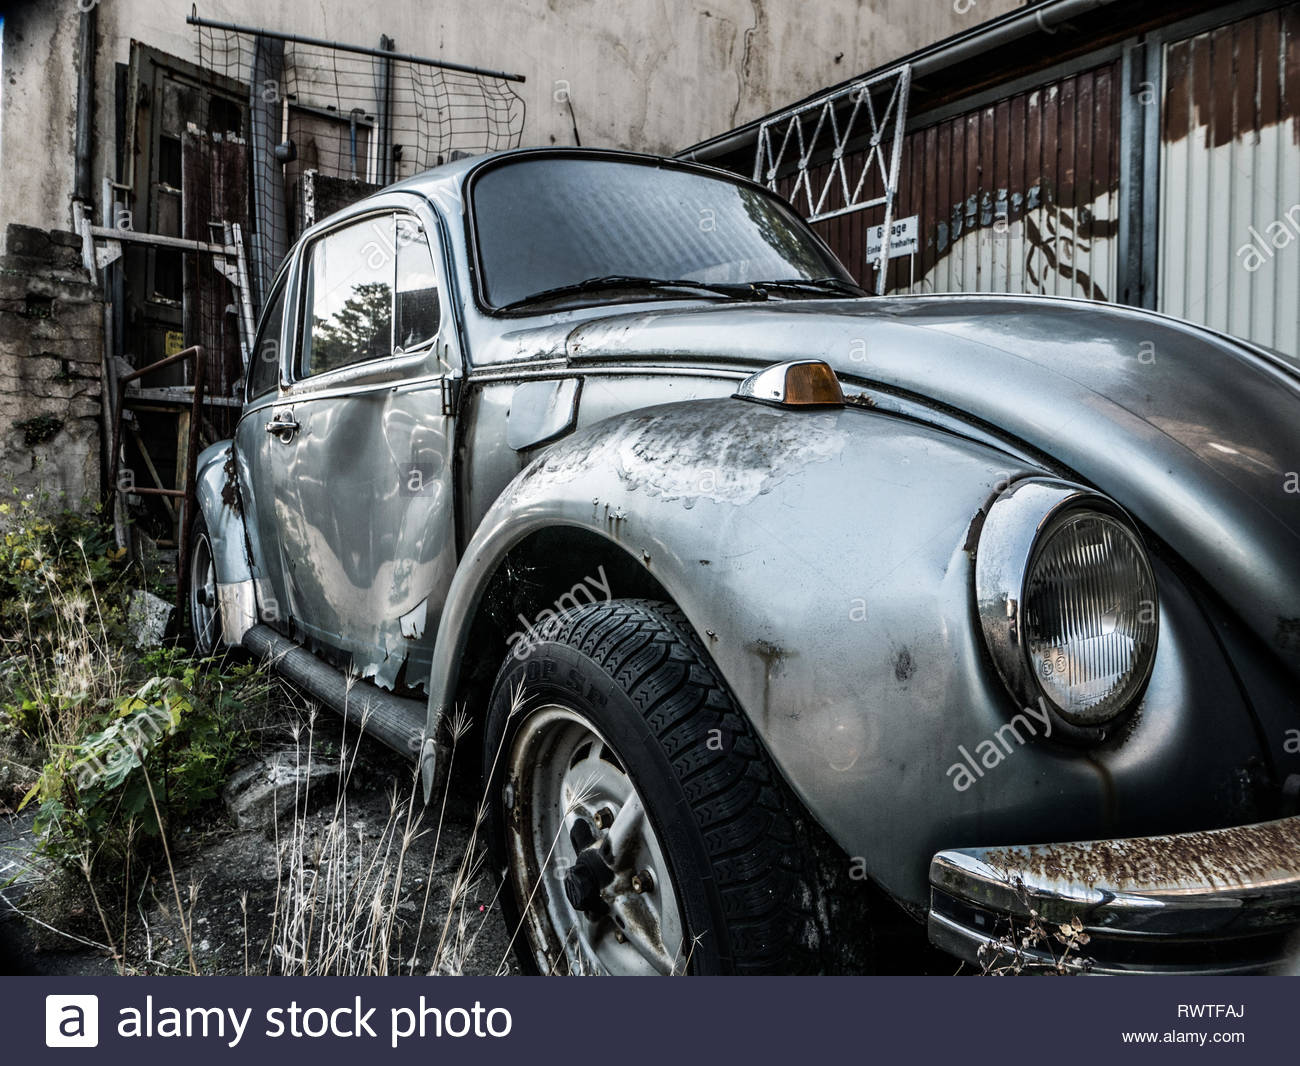 decay beetle car - Stock Image